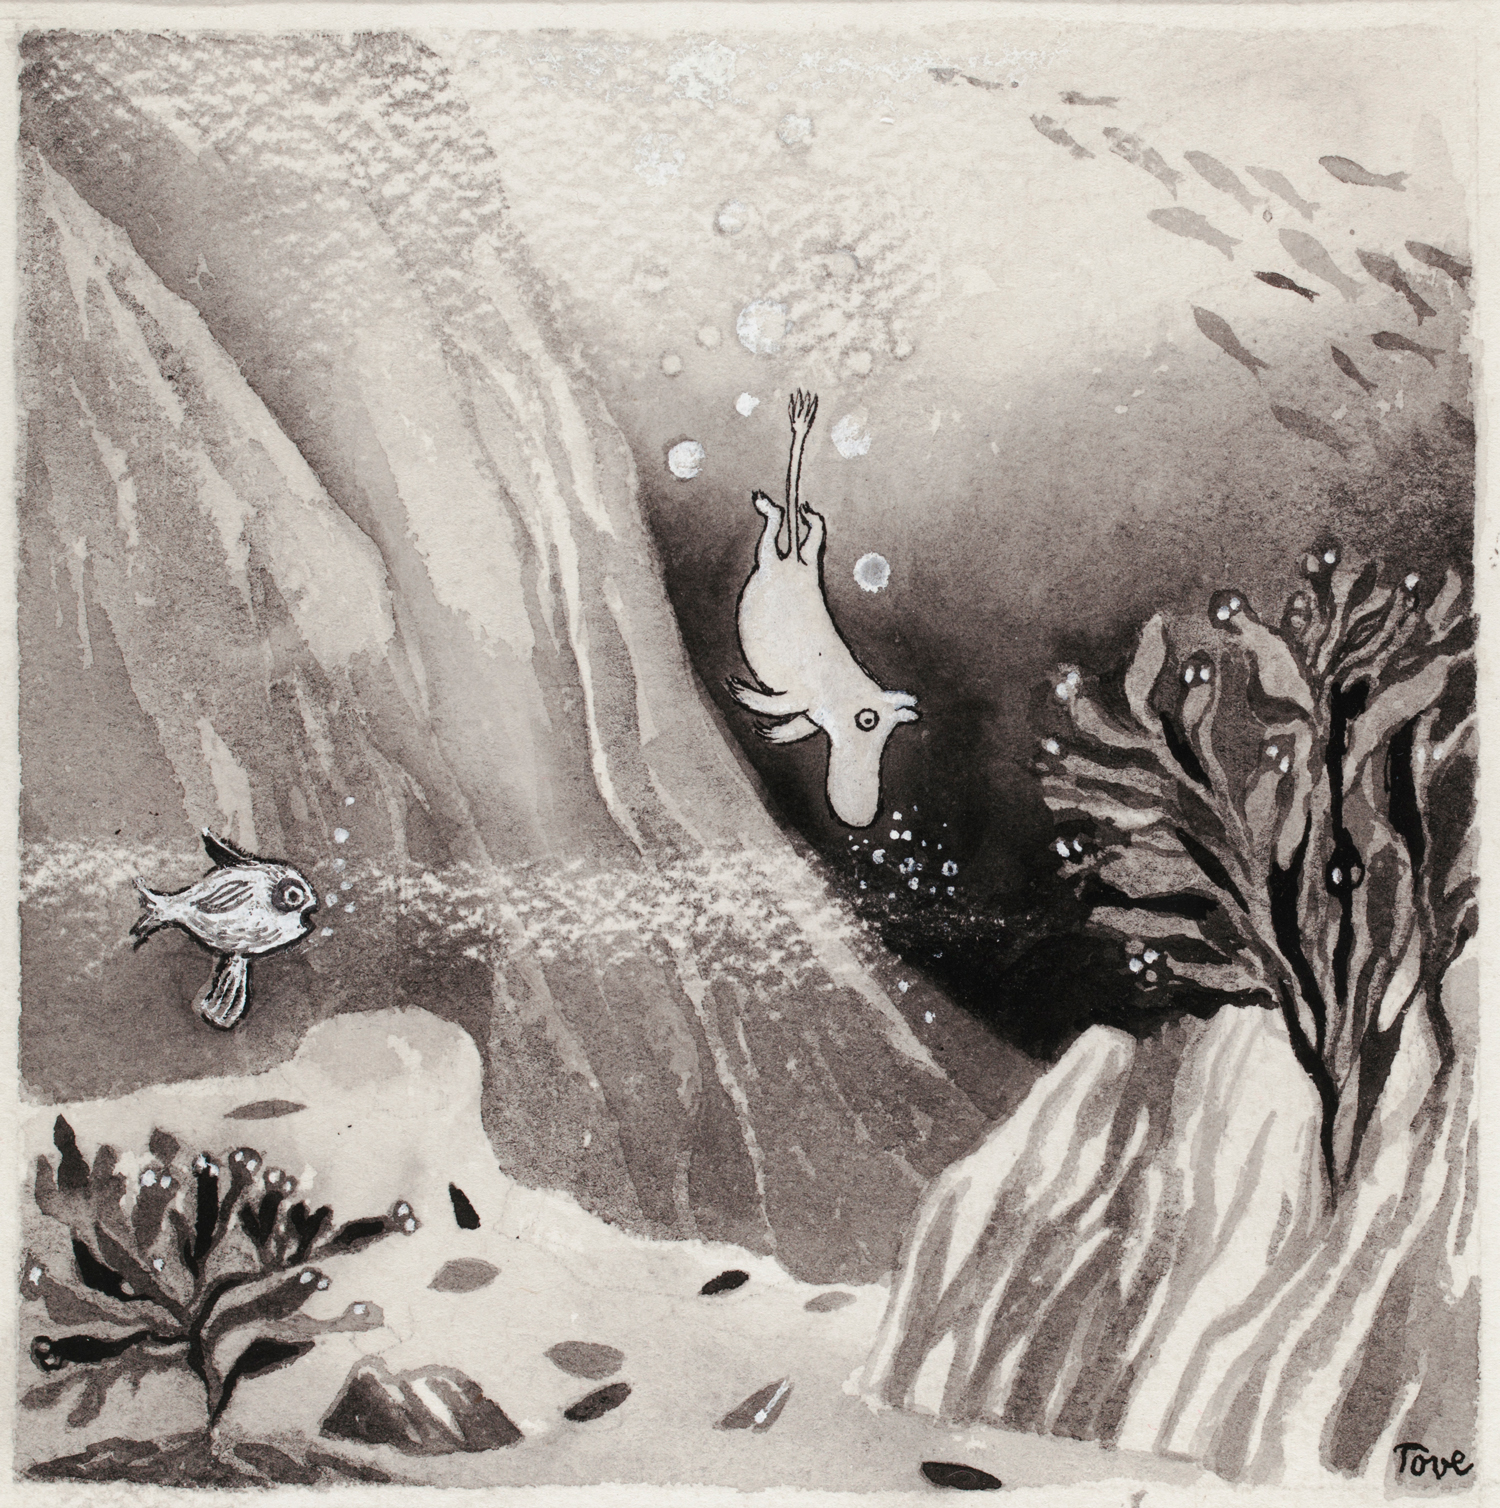 Tove Jansson, Illustration for the book Comet in Moominland, 1946, wash and indian ink, 15,8 x 15,8 cm, Moomin Museum, Tampere Art Museum Moominvalley Collection. Photo: Finnish National Gallery / Hannu Aaltonen. ©Moomin Characters TM